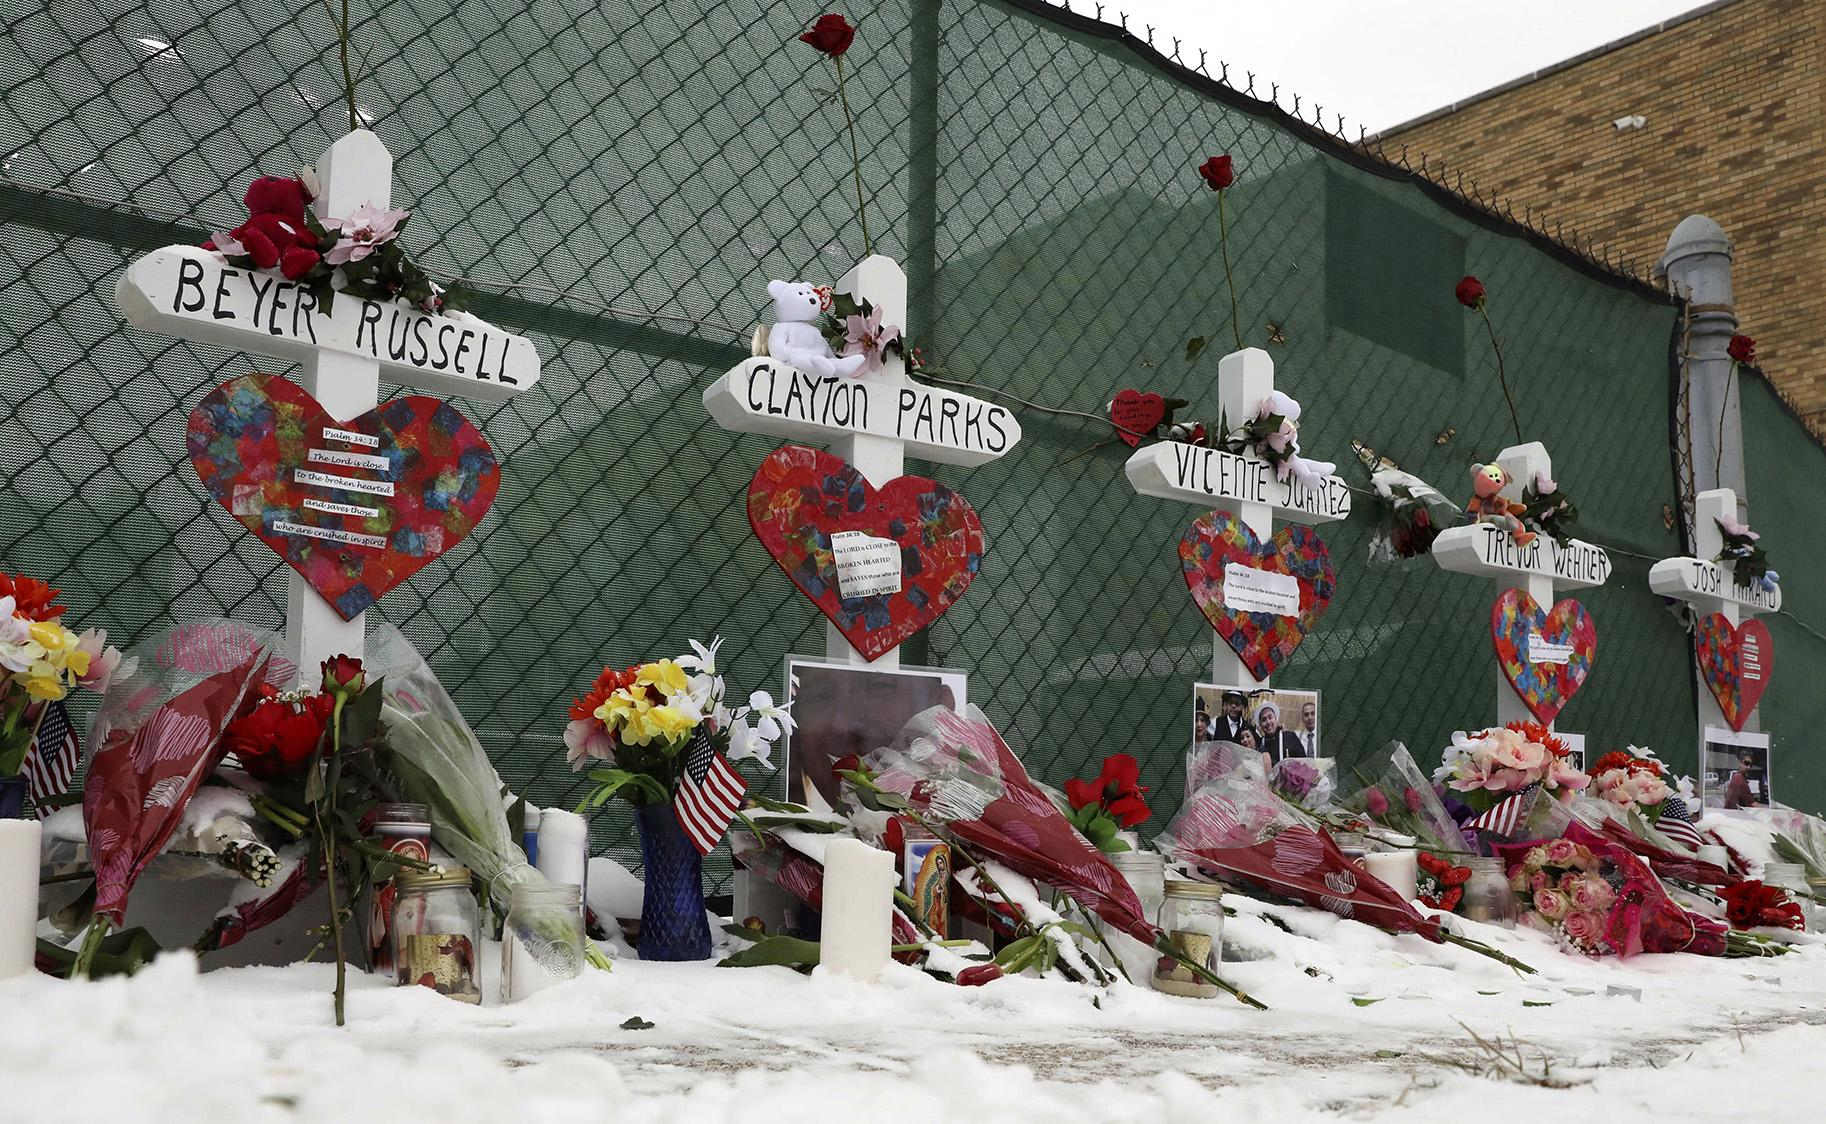 Crosses are placed for the victims of a mass shooting Sunday, Feb. 17, 2019, in Aurora, near Henry Pratt Co. manufacturing company where several were killed on Friday. (AP Photo / Nam Y. Huh)